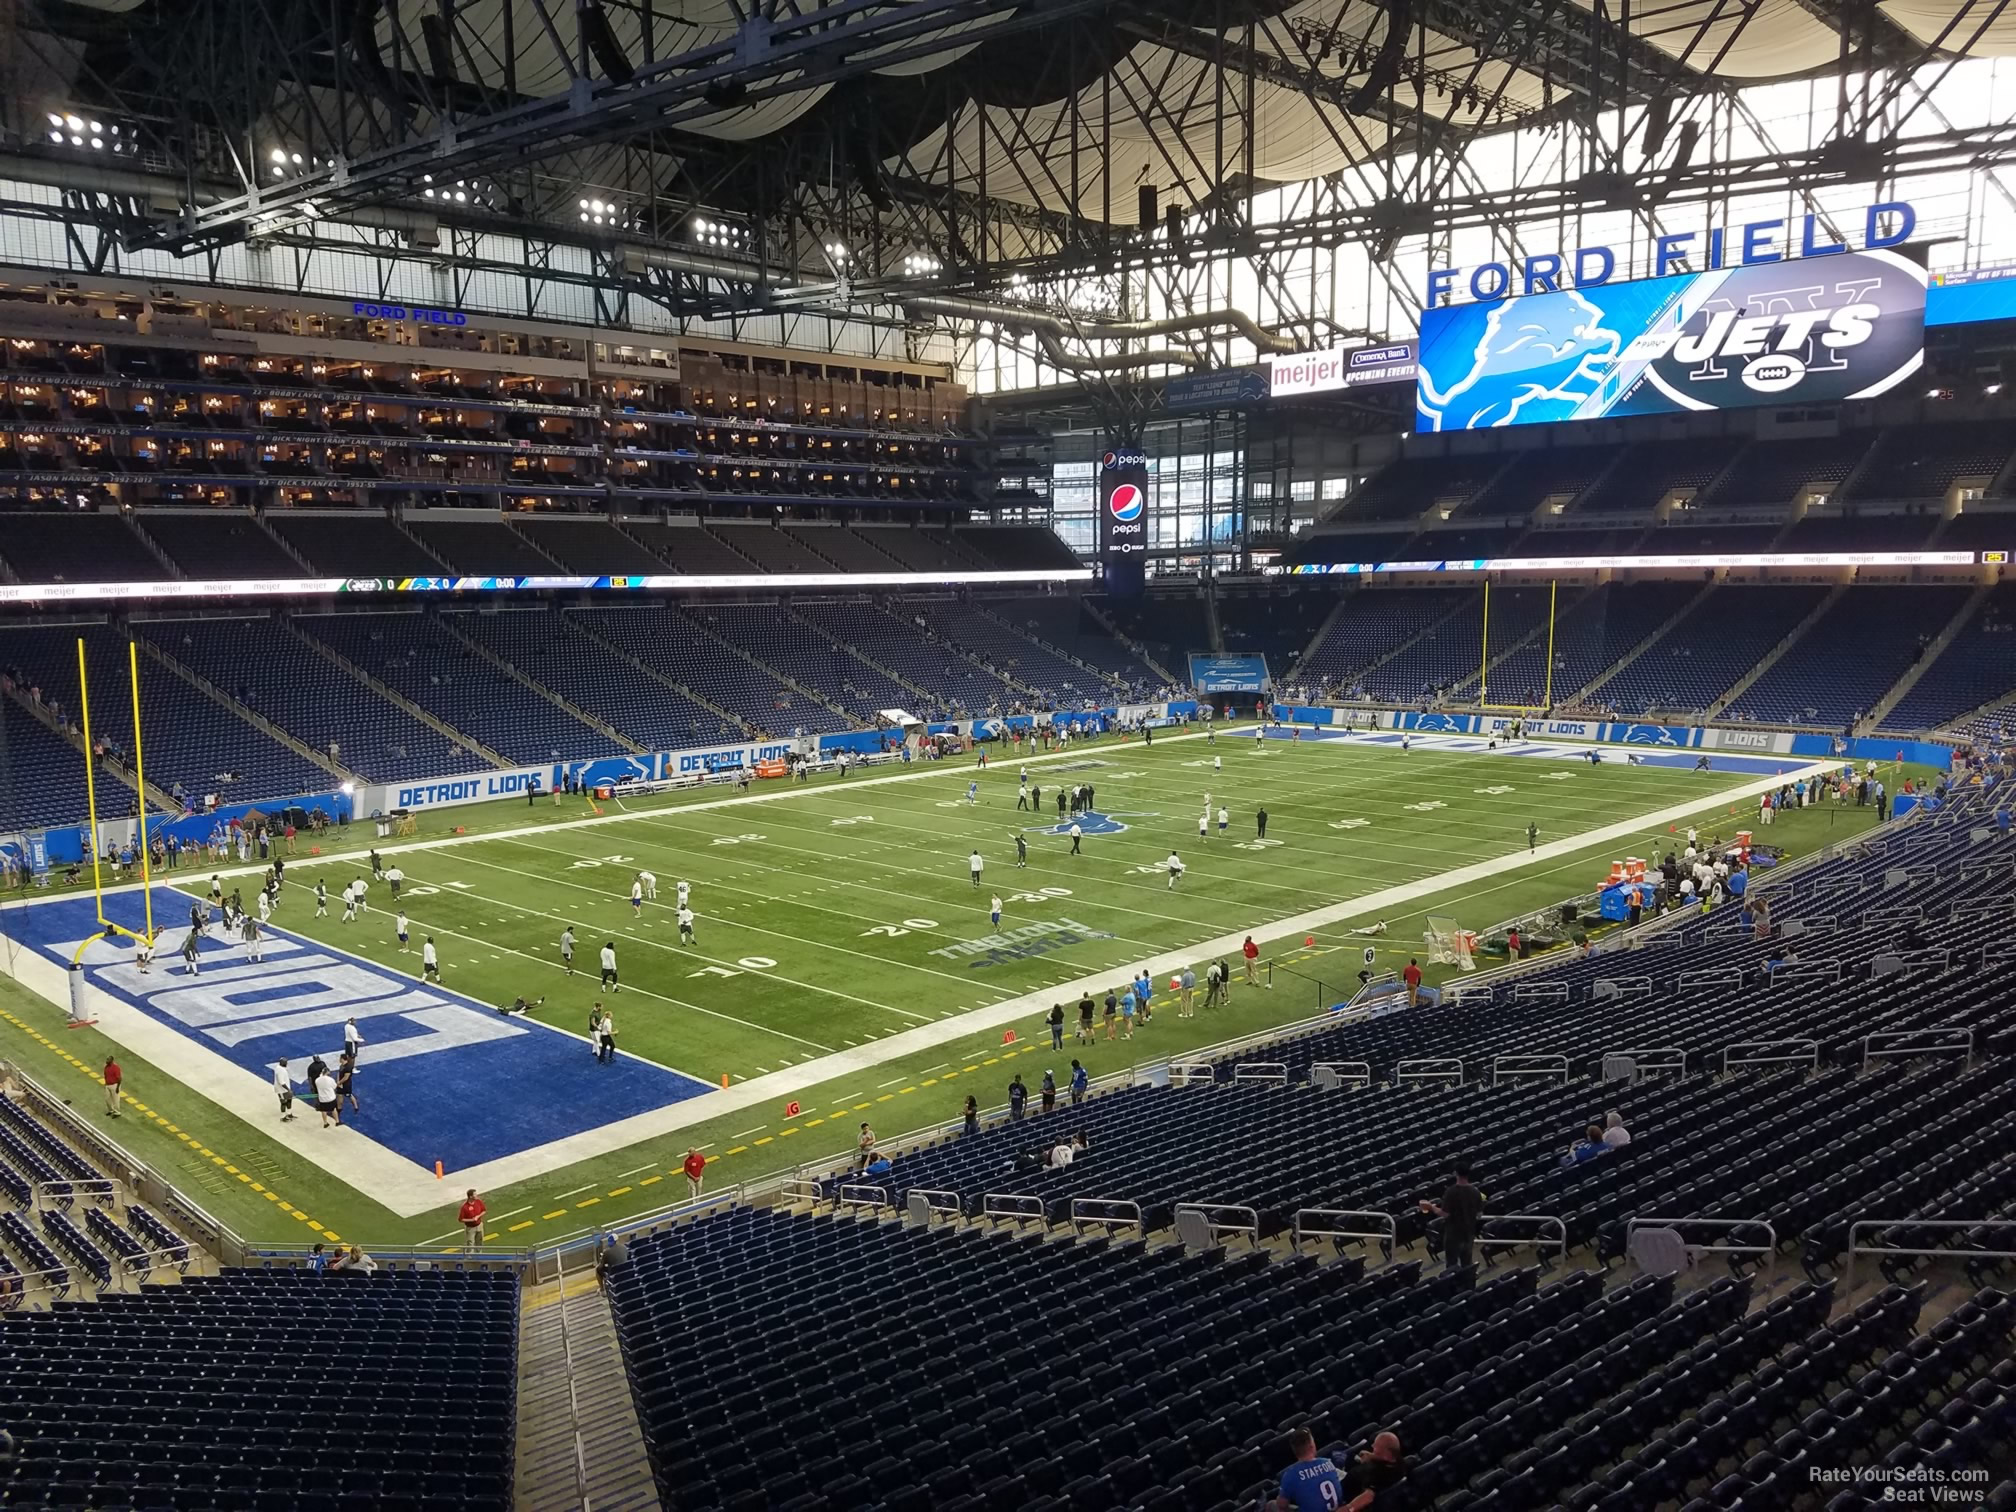 Ford Field Section 224 - Detroit Lions - RateYourSeats.com